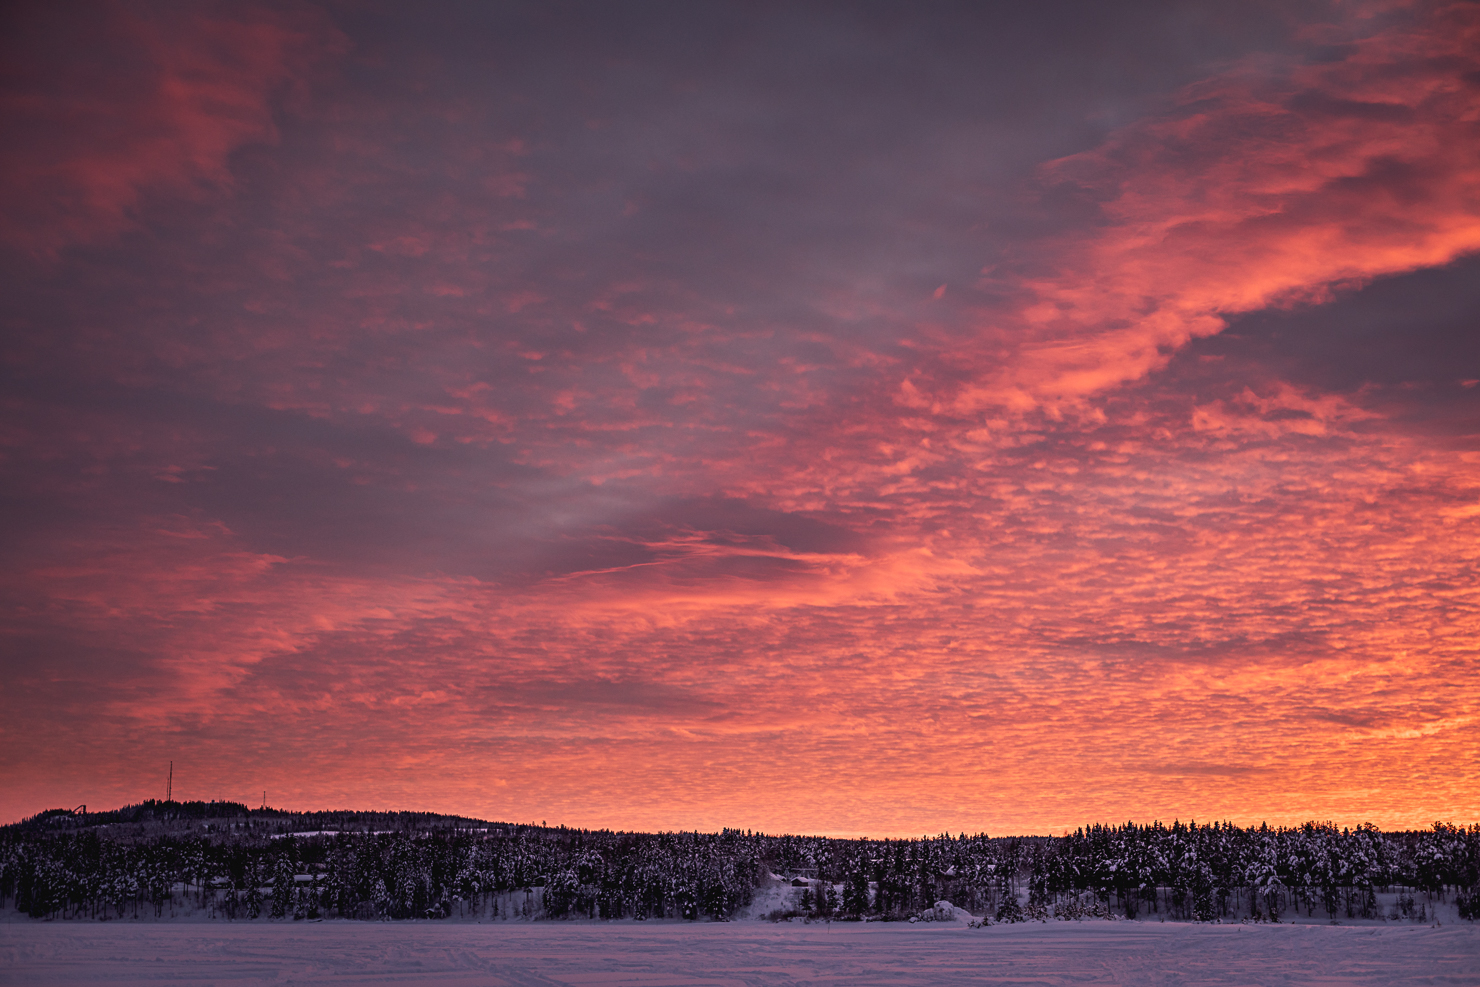 Winter sunset in Särna